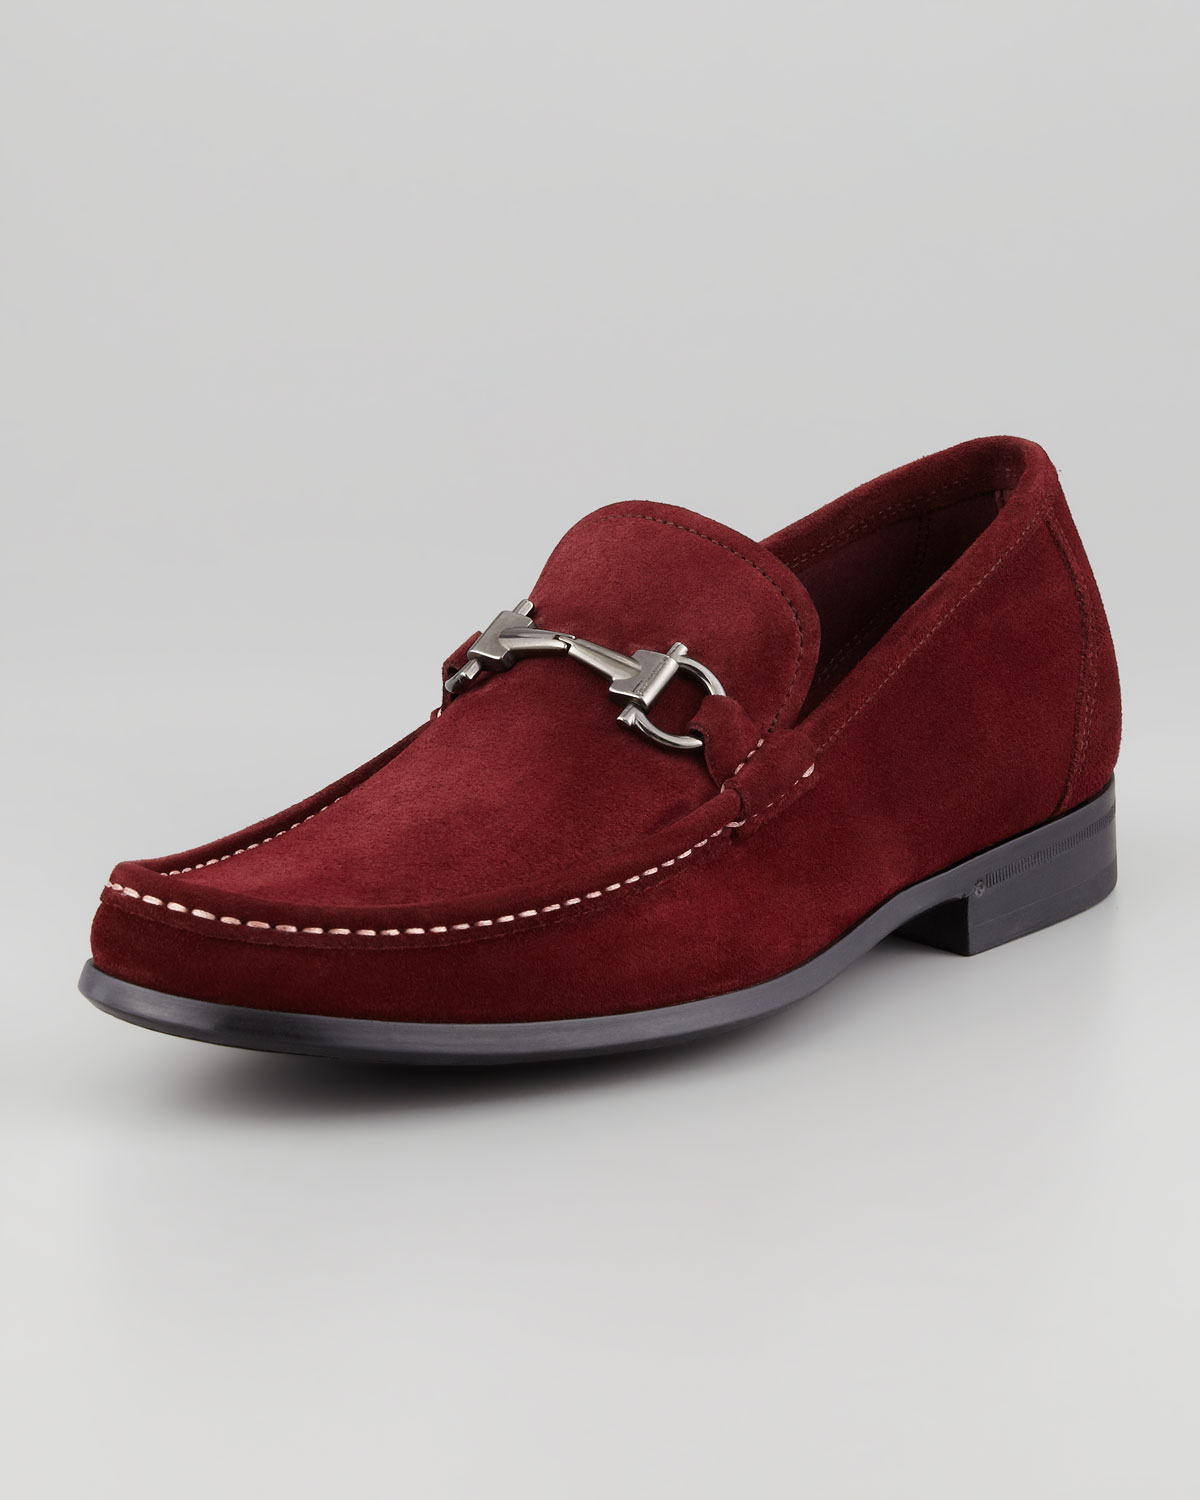 Ferragamo Slip On Shoes Maroon